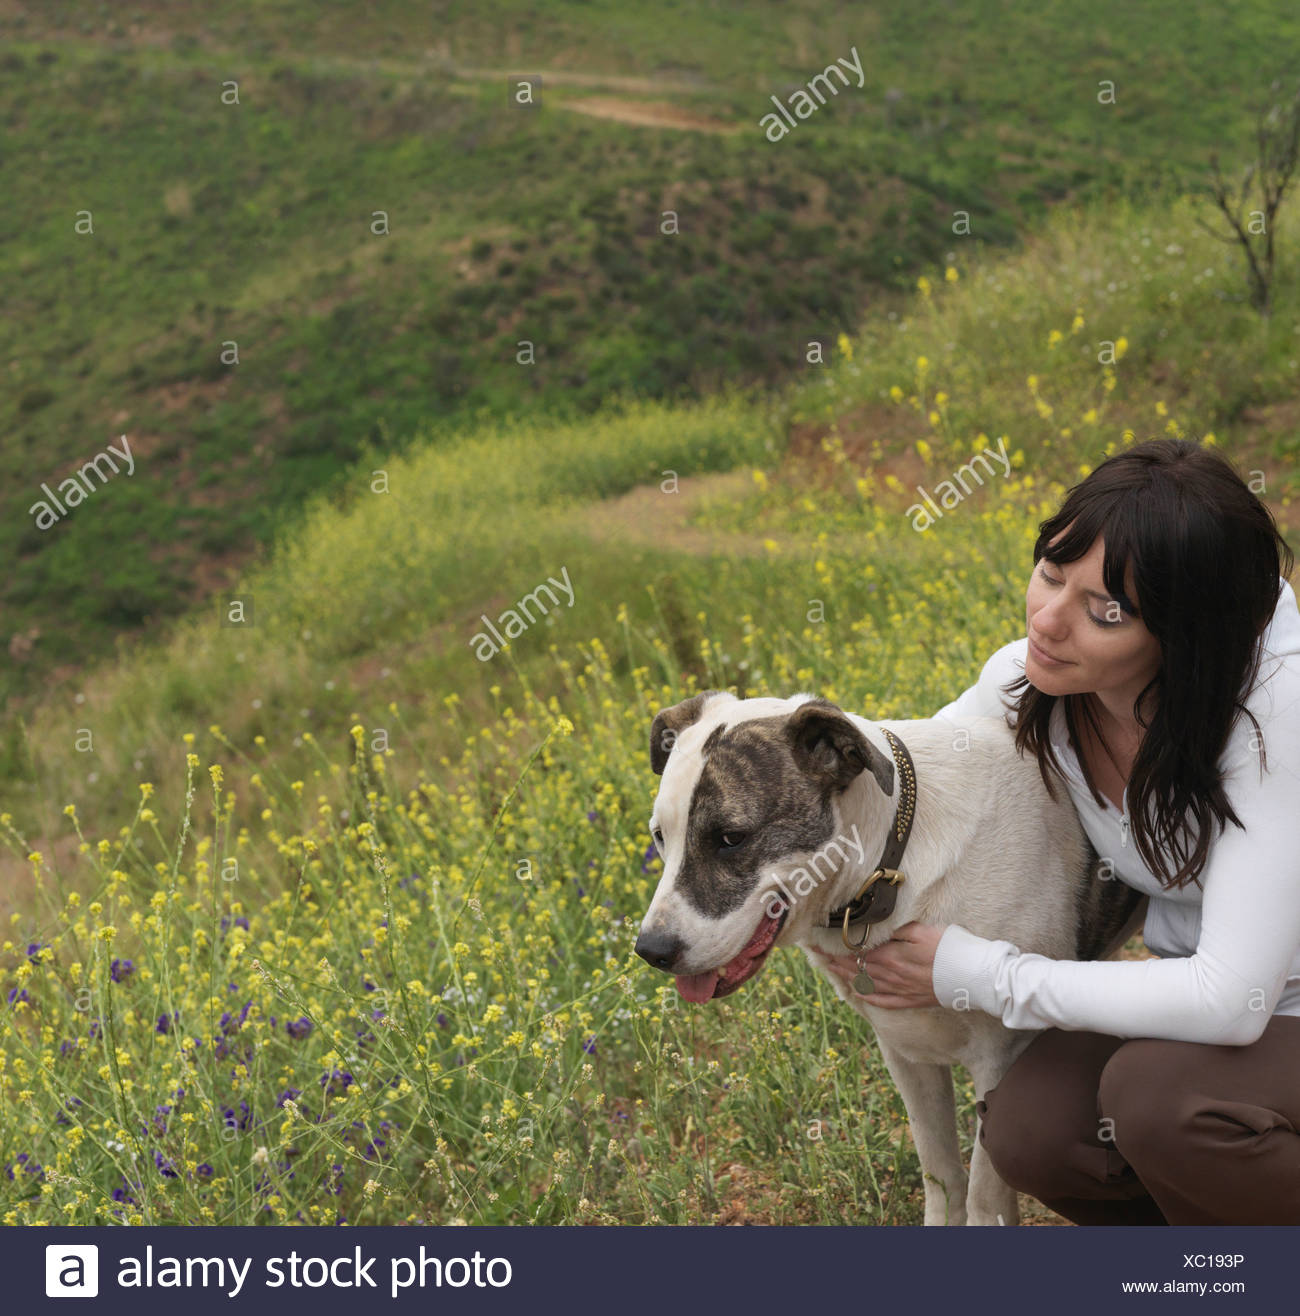 Woman hugging dog on nature trail Stock Photo